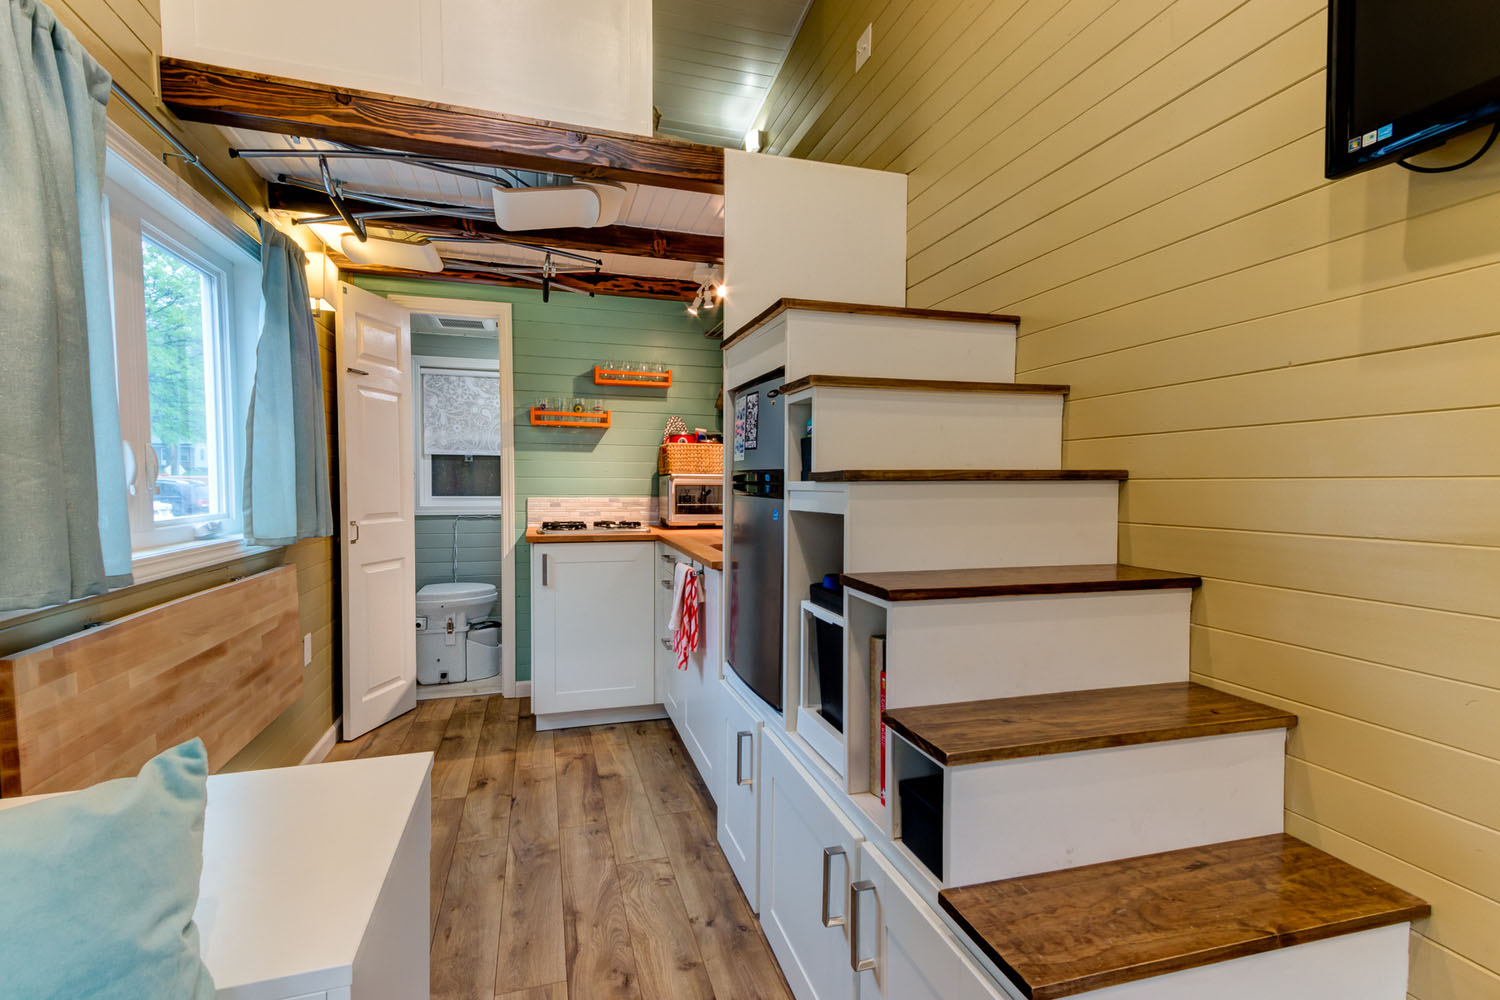 Tiny House Interior with Storage under the Staircase